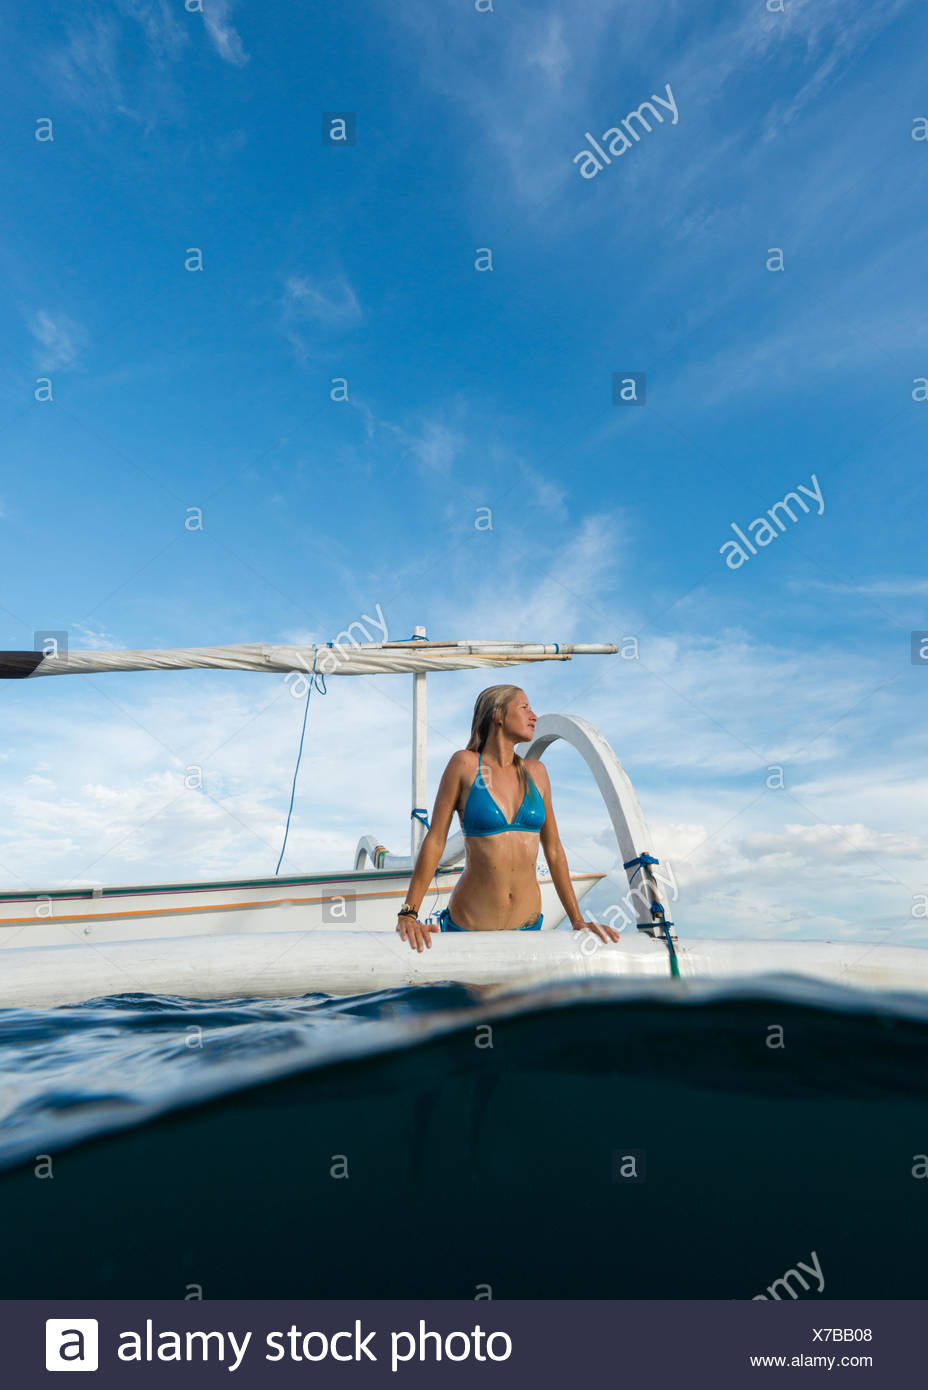 Woman getting out of the sea onto a boat, Bali, Indonesia Stock Photo